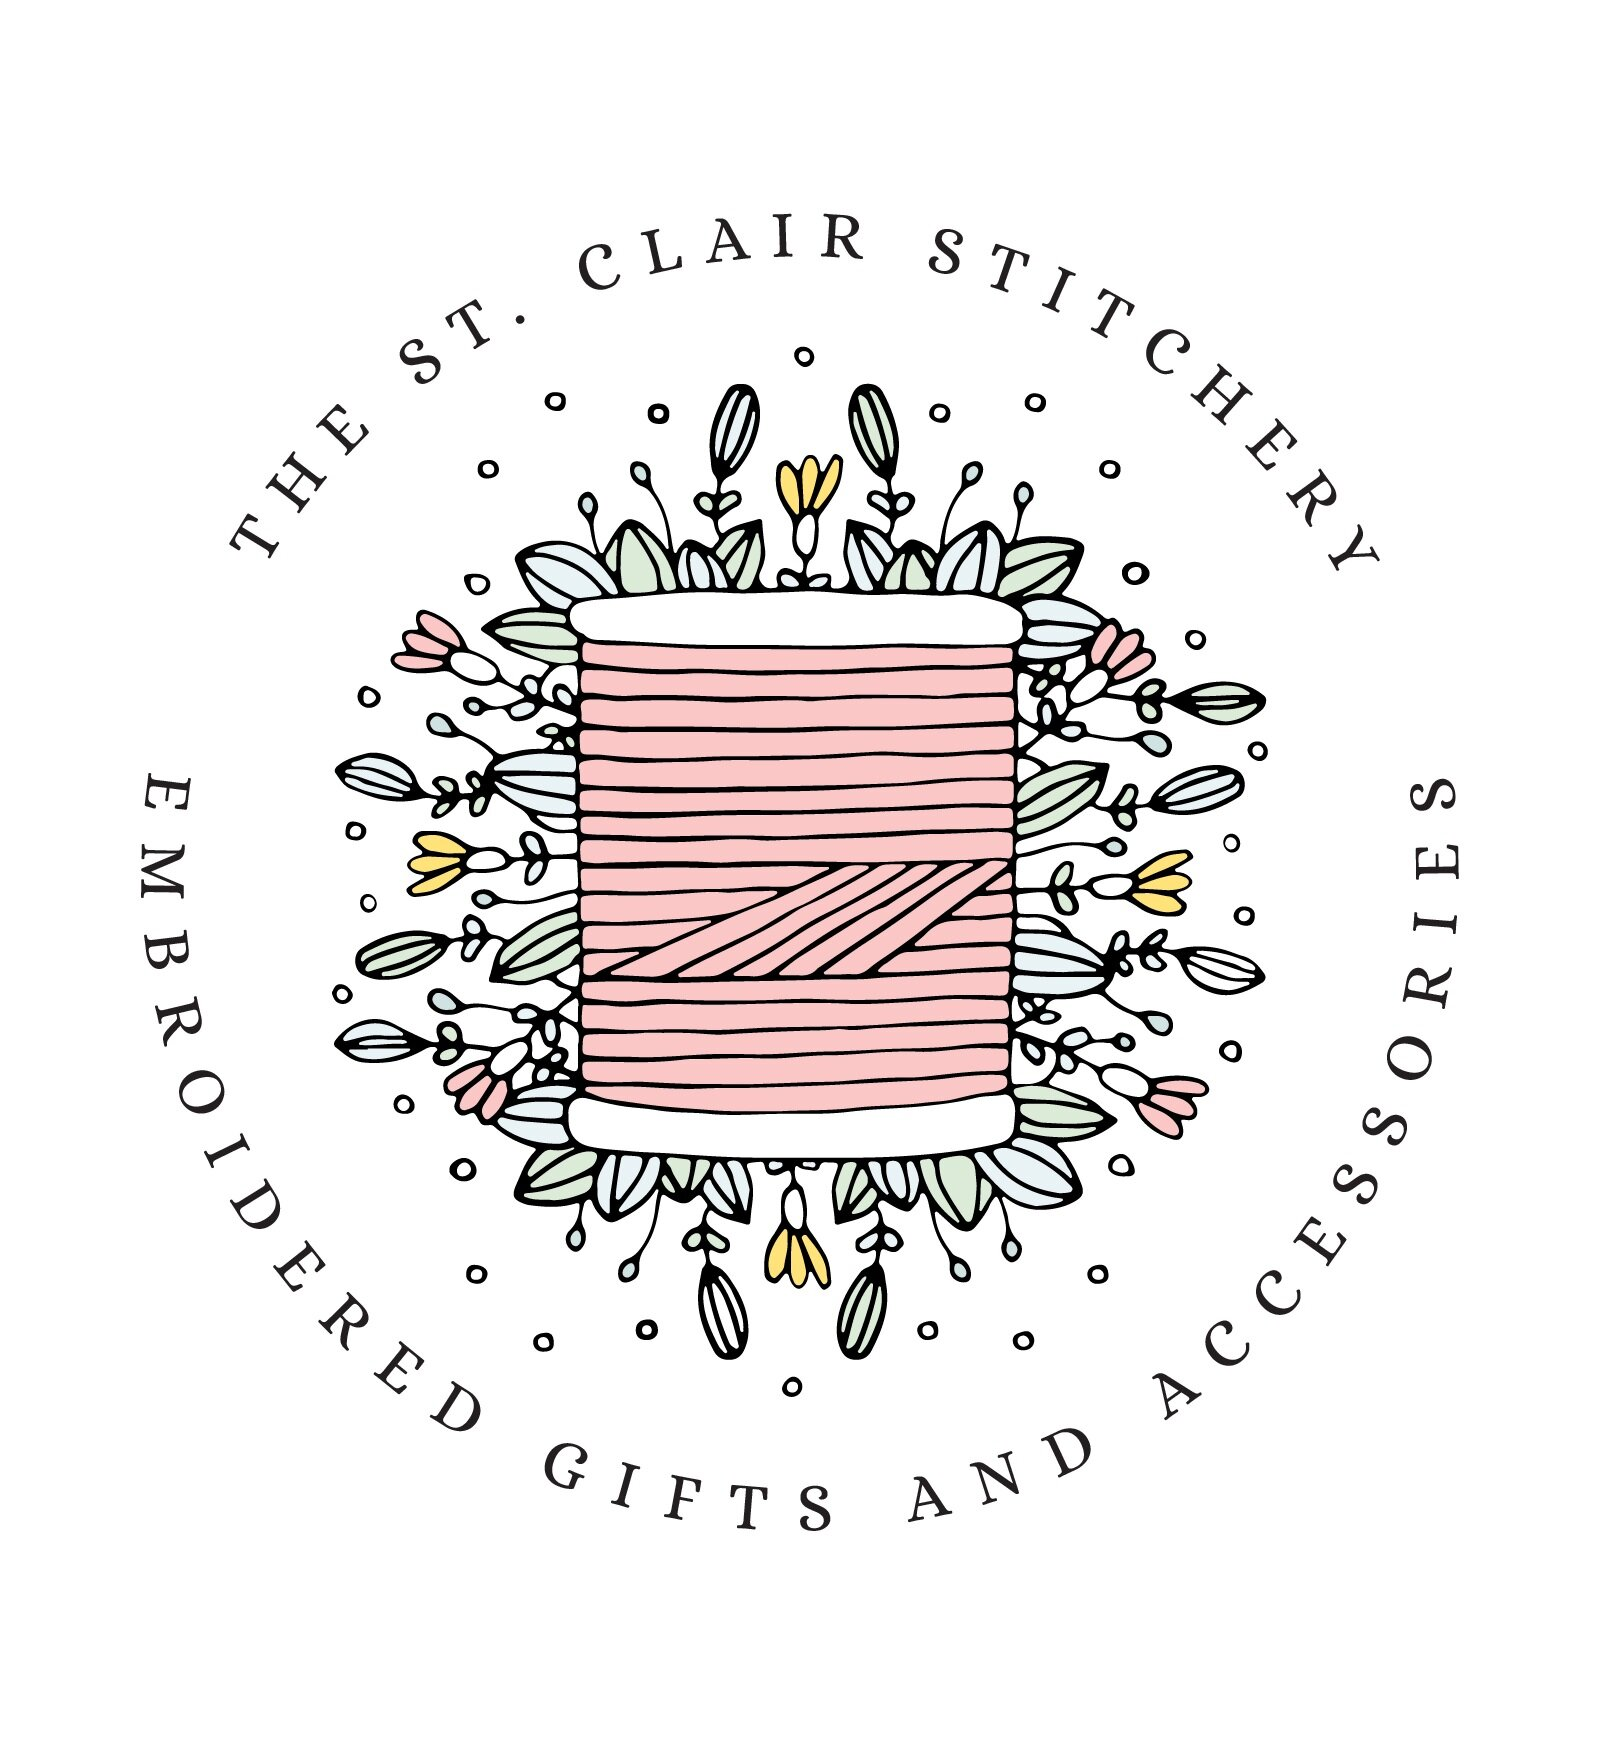 The St. Clair Stitchery